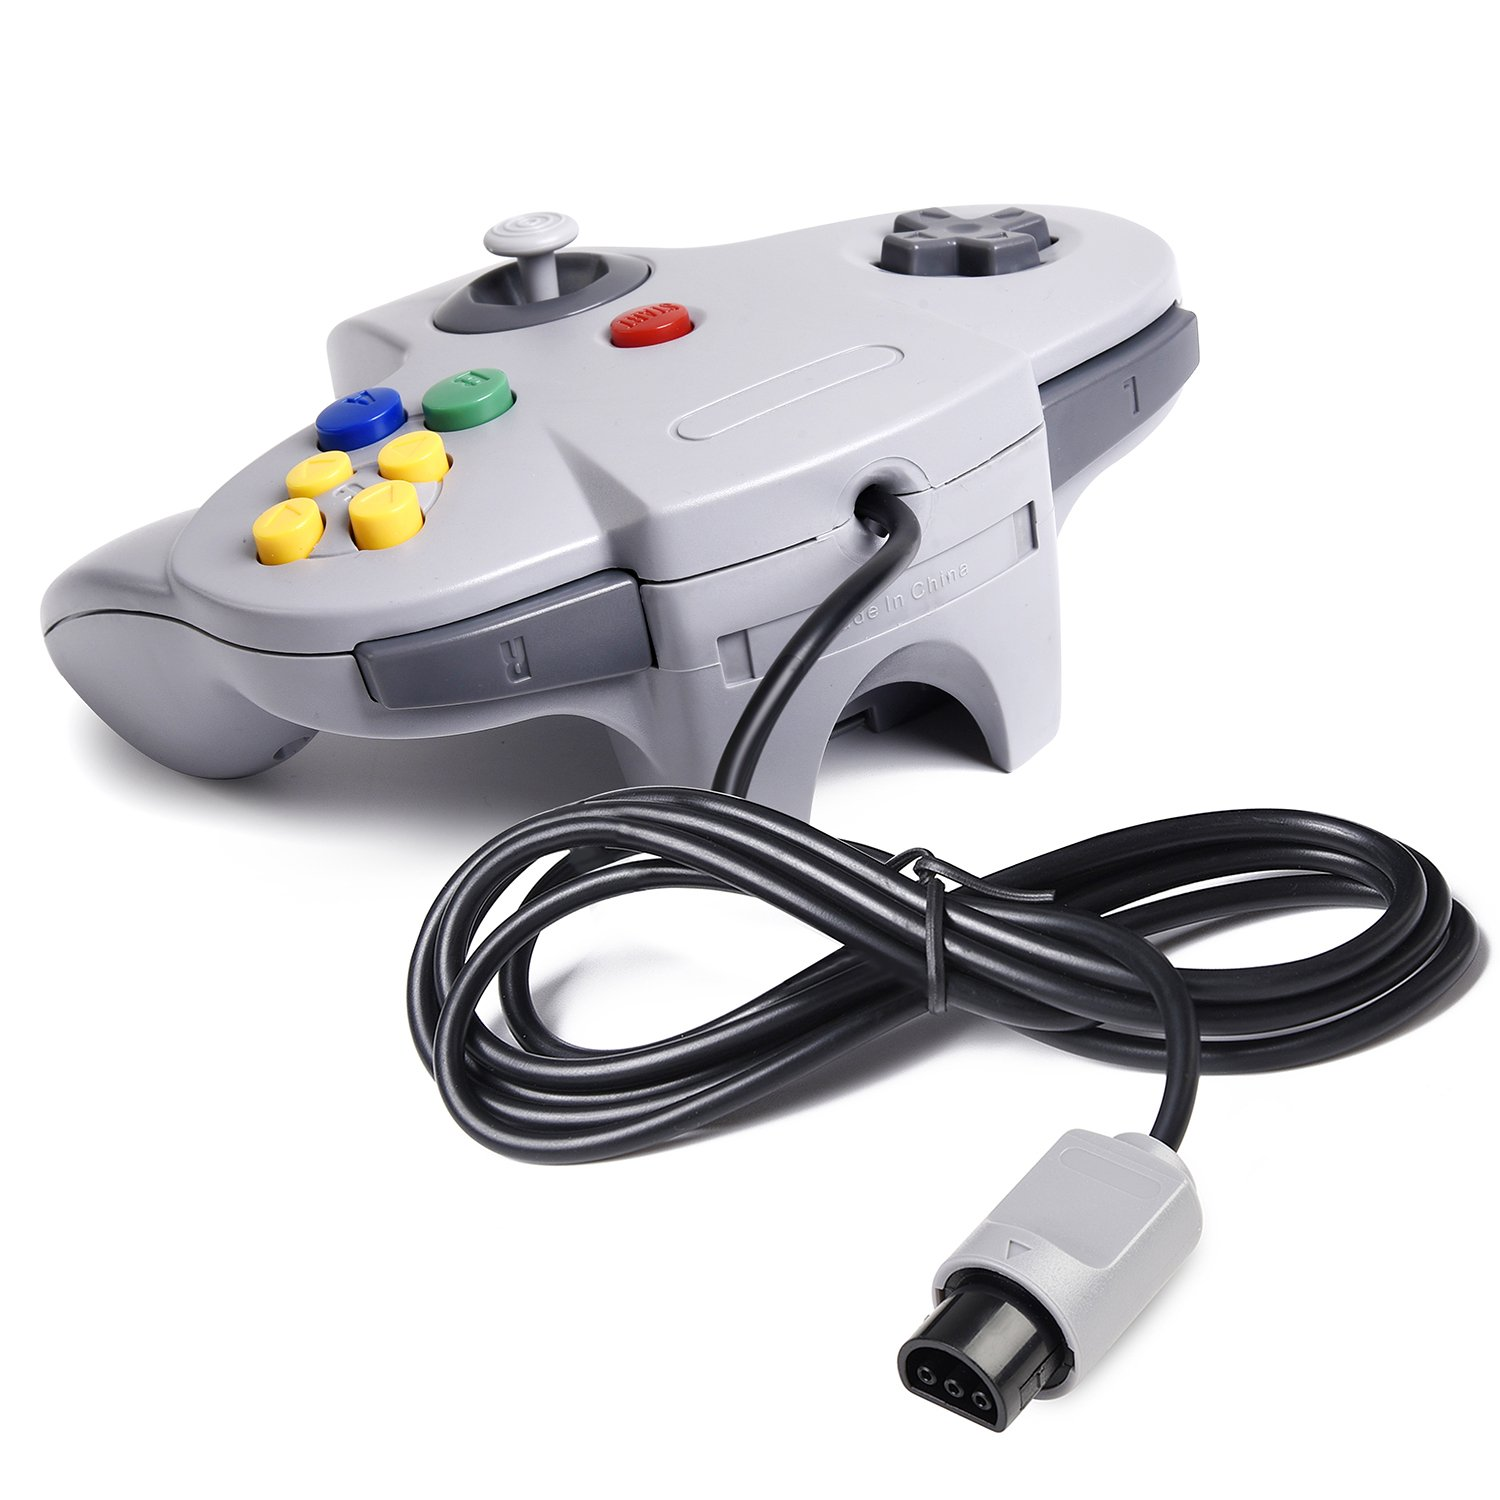 2xClassic 64 N64 Controller,kiwitata Retro Wired Gamepad Controller Joystick for N64 Console Nintendo 64 Video Games System Black+Gray by kiwitatá (Image #3)